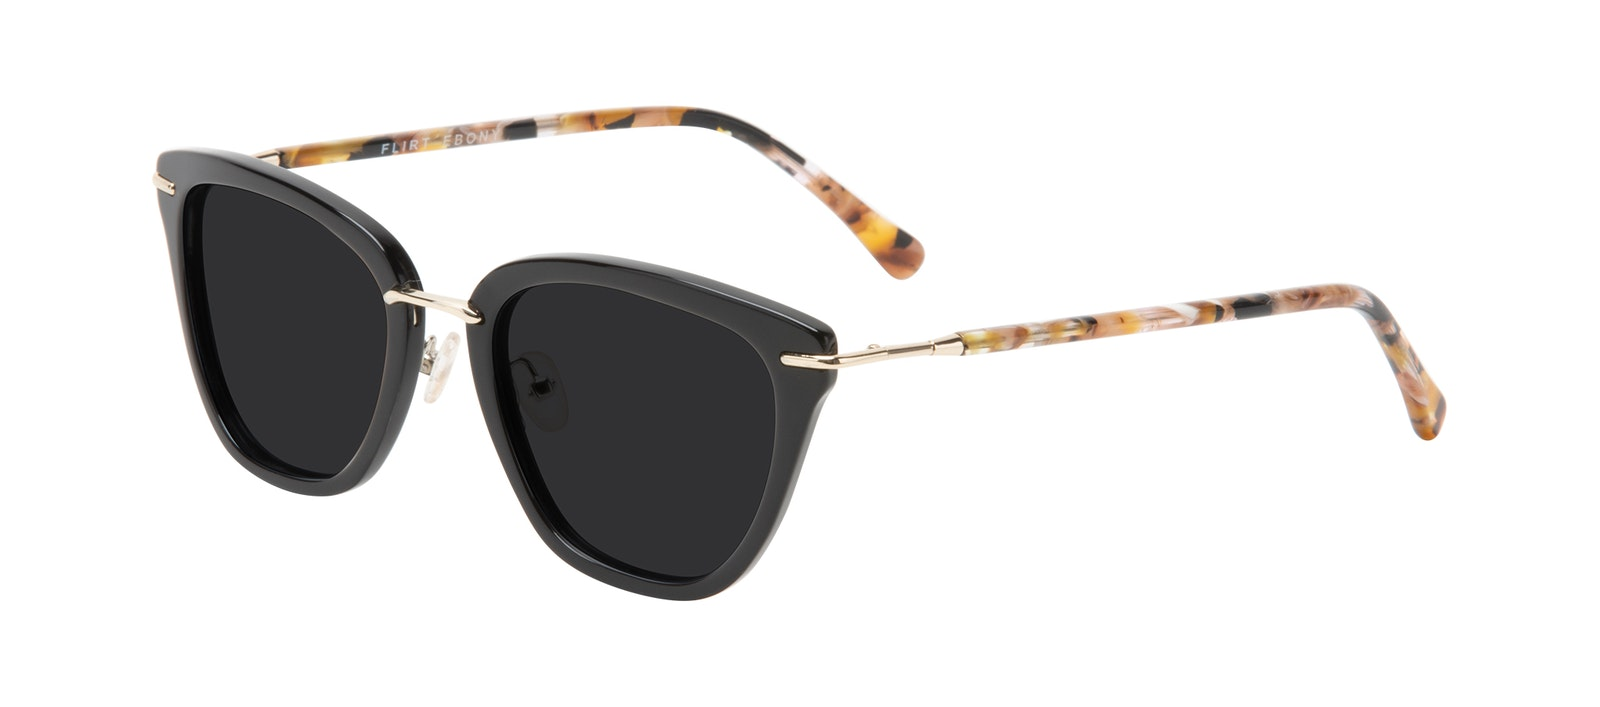 Affordable Fashion Glasses Square Sunglasses Women Flirt Ebony Tilt